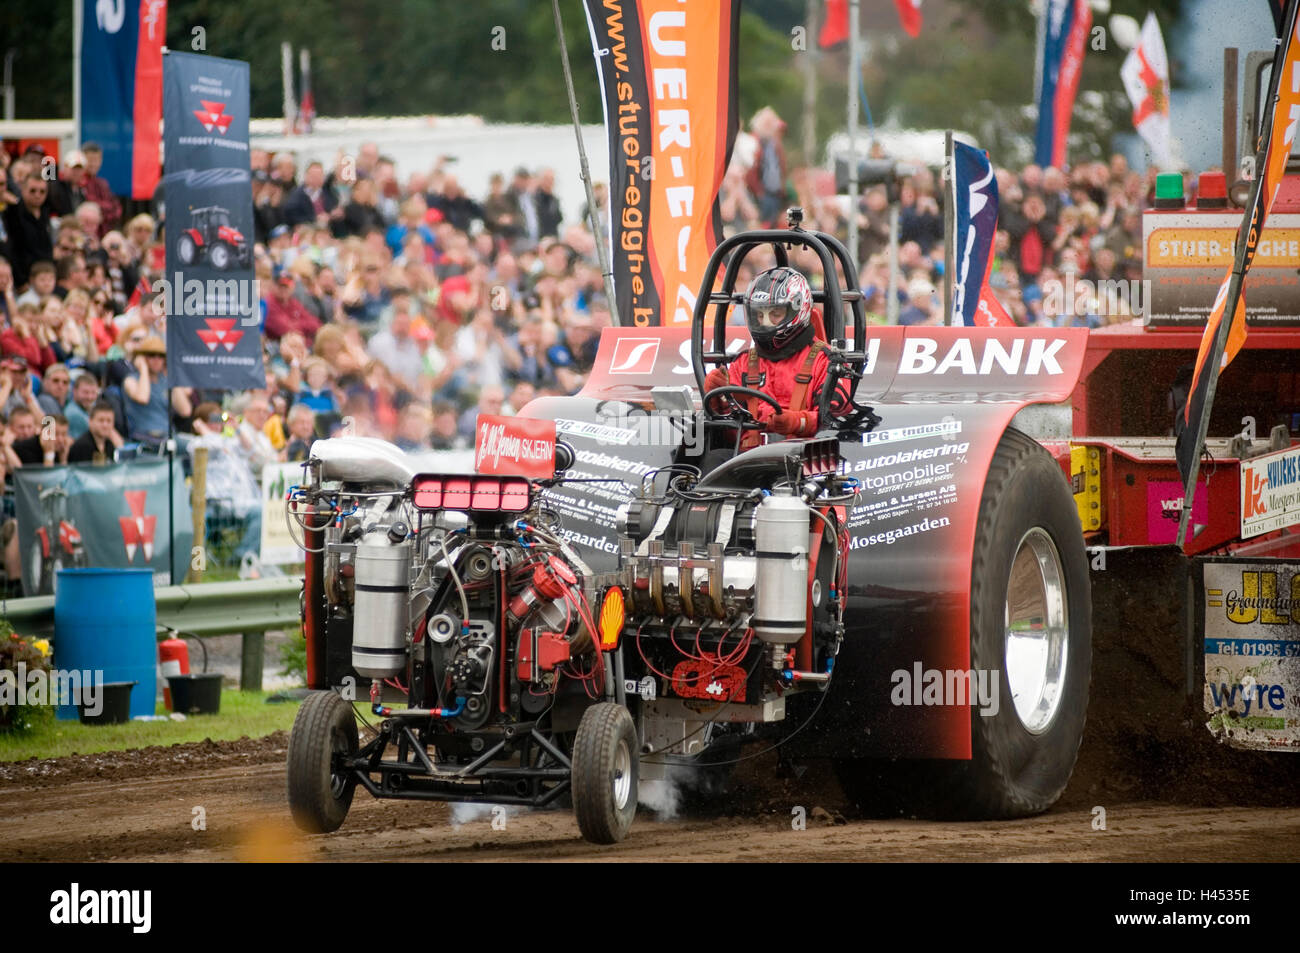 tractor pull pulls pulling puller pullers tractors track event events competition high horsepower powerful engine - Stock Image